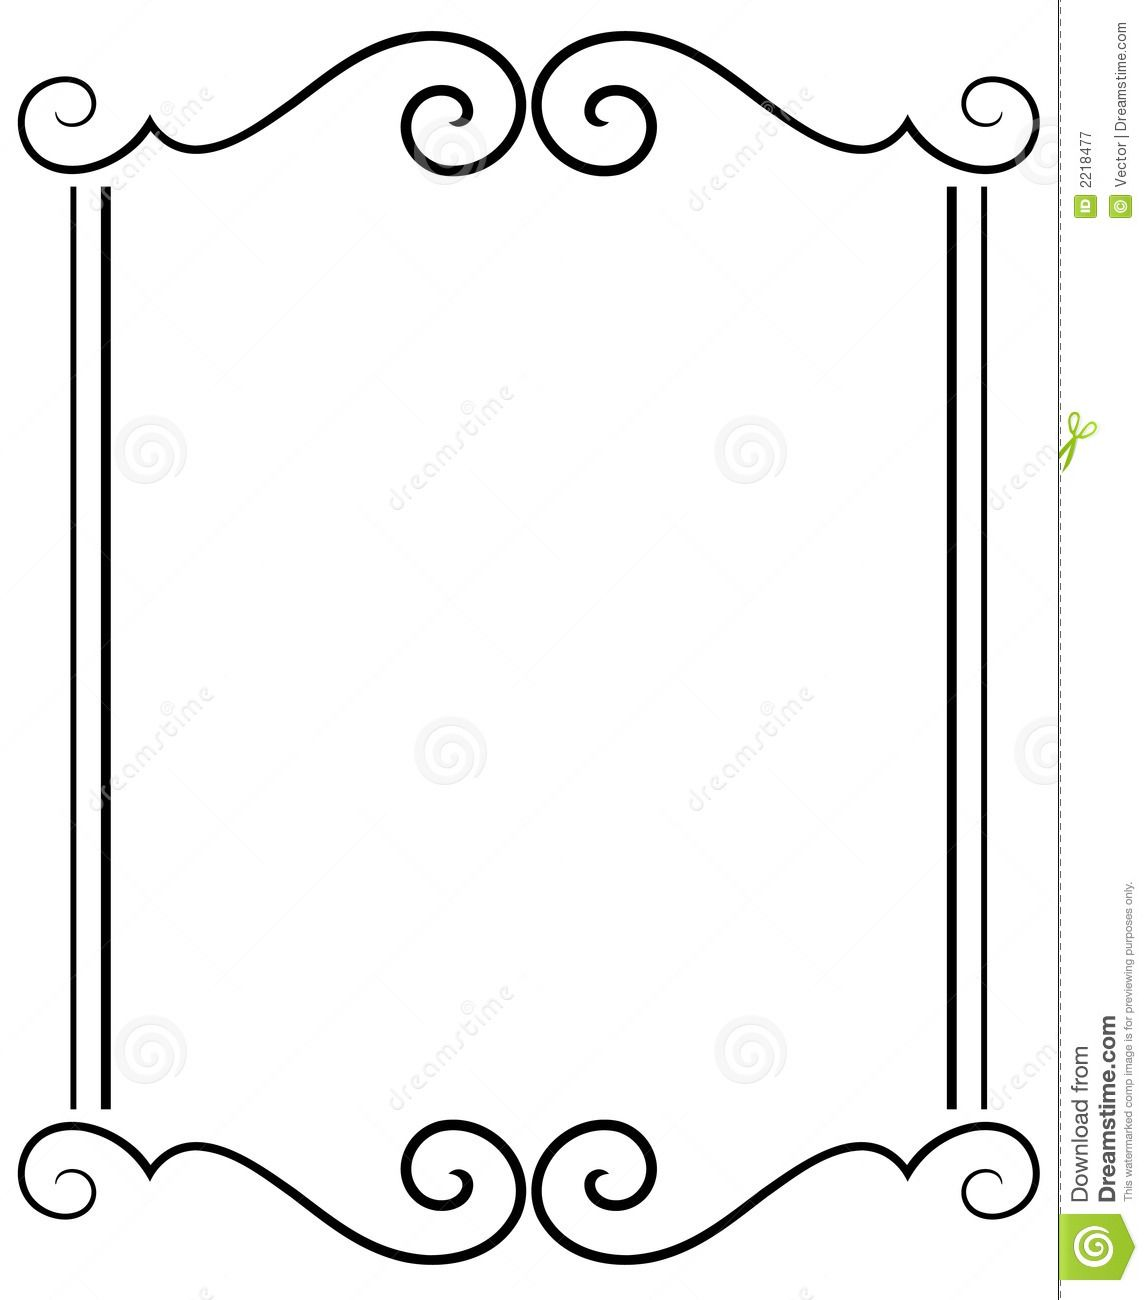 simple frame designs decorative frame 2218477jpg 11481300 weight loss pinterest